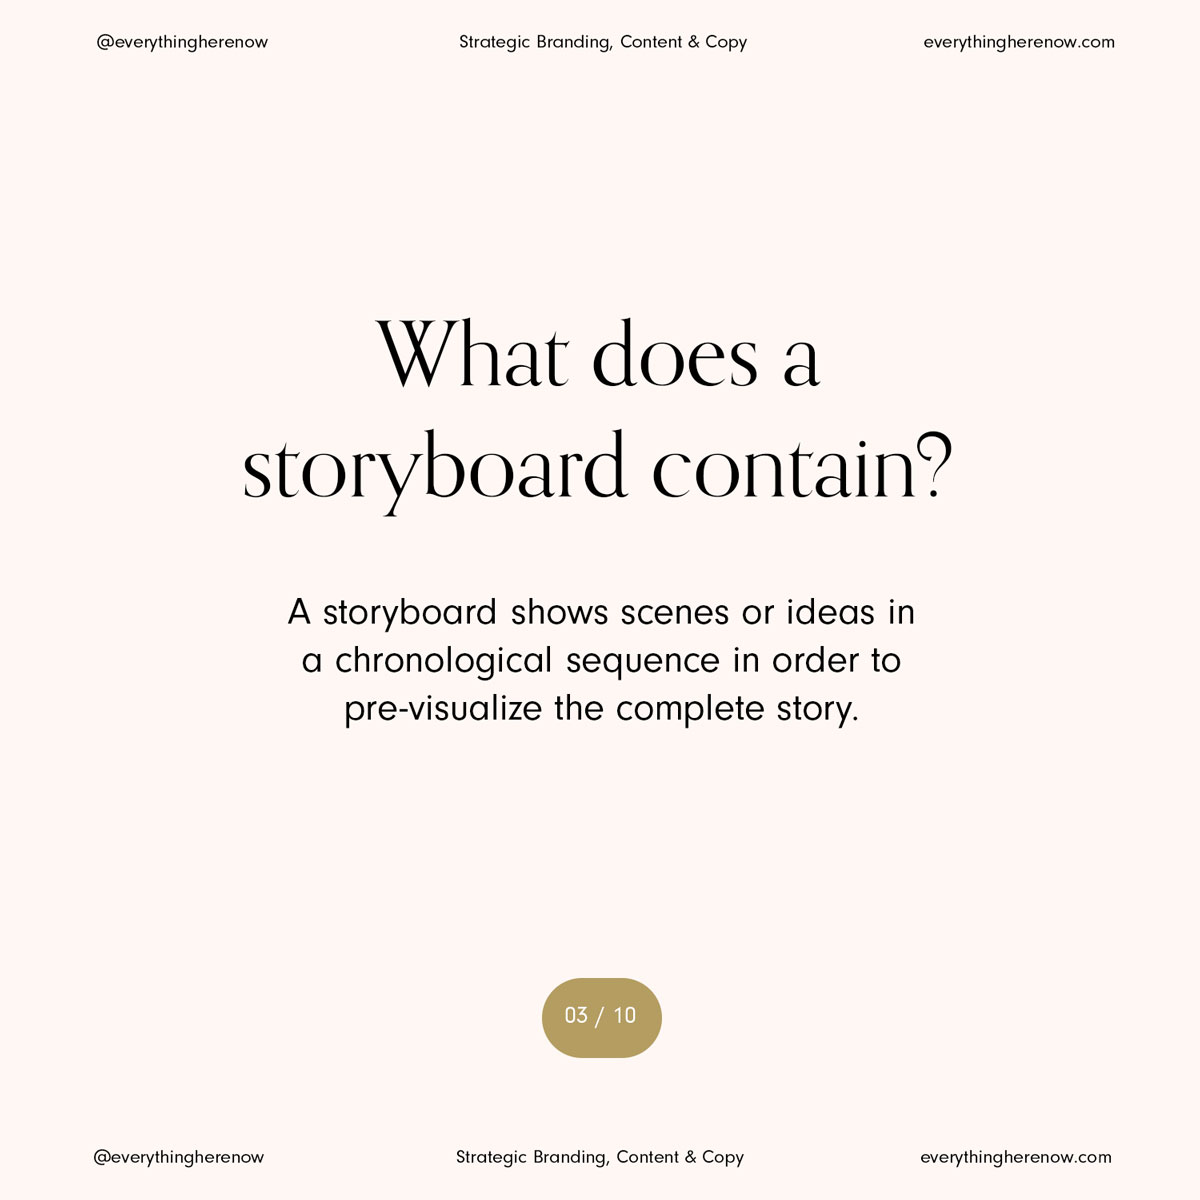 storyboarding-for-instagram-stories-what-it-is-and-when-to-use-it-by-everything-here-now-3